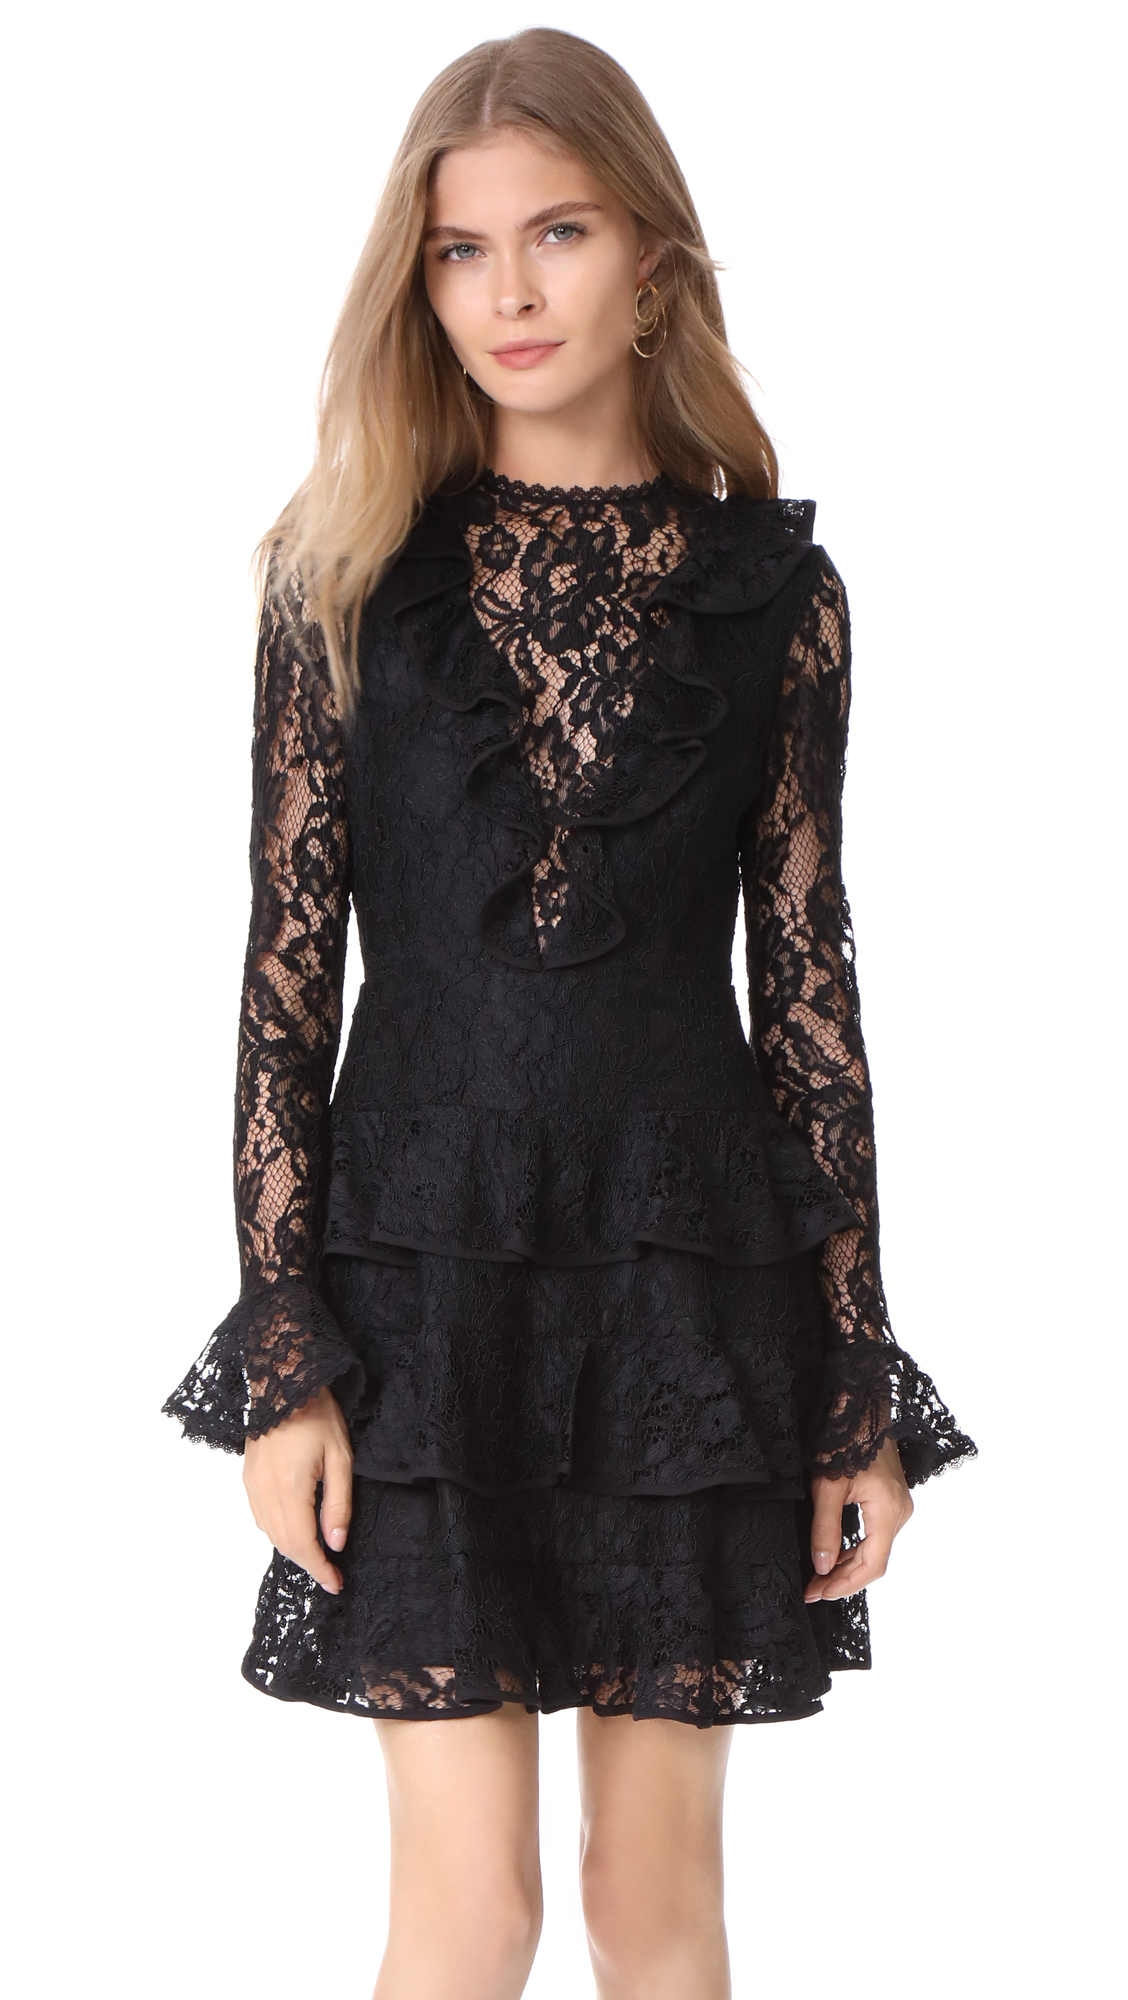 Alexis Tracie Lace Dress